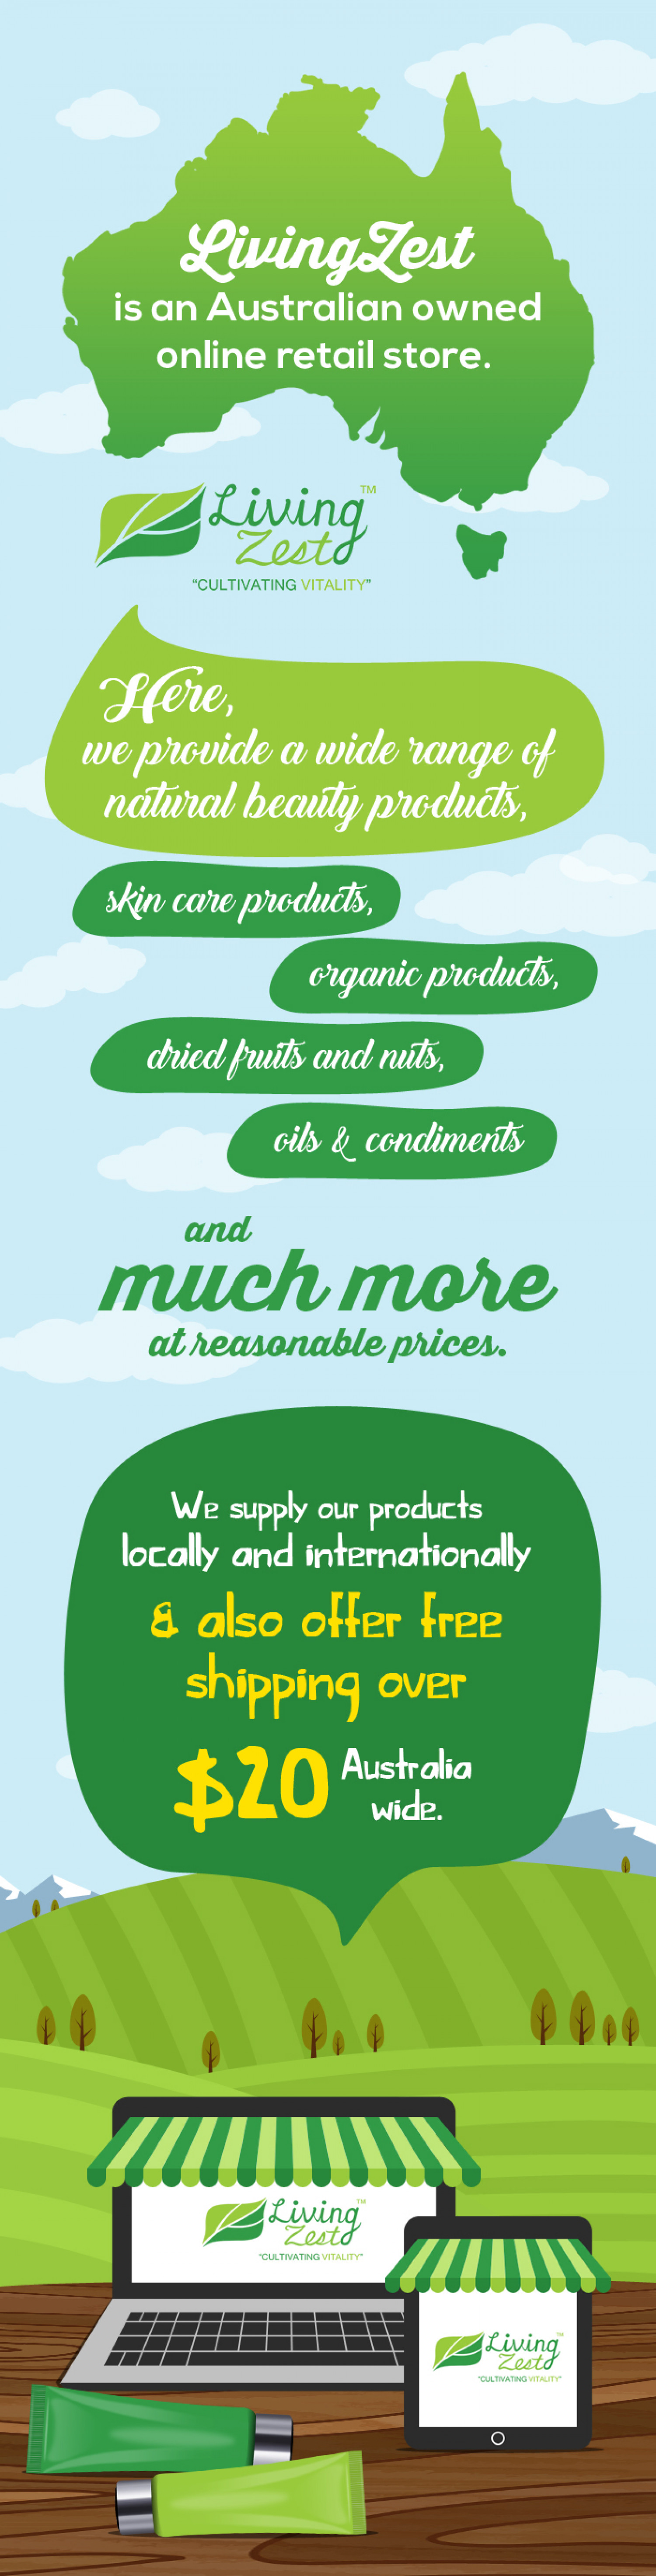 LivingZest - An Online Store for Organic, Beauty & Skin Care Products Infographic